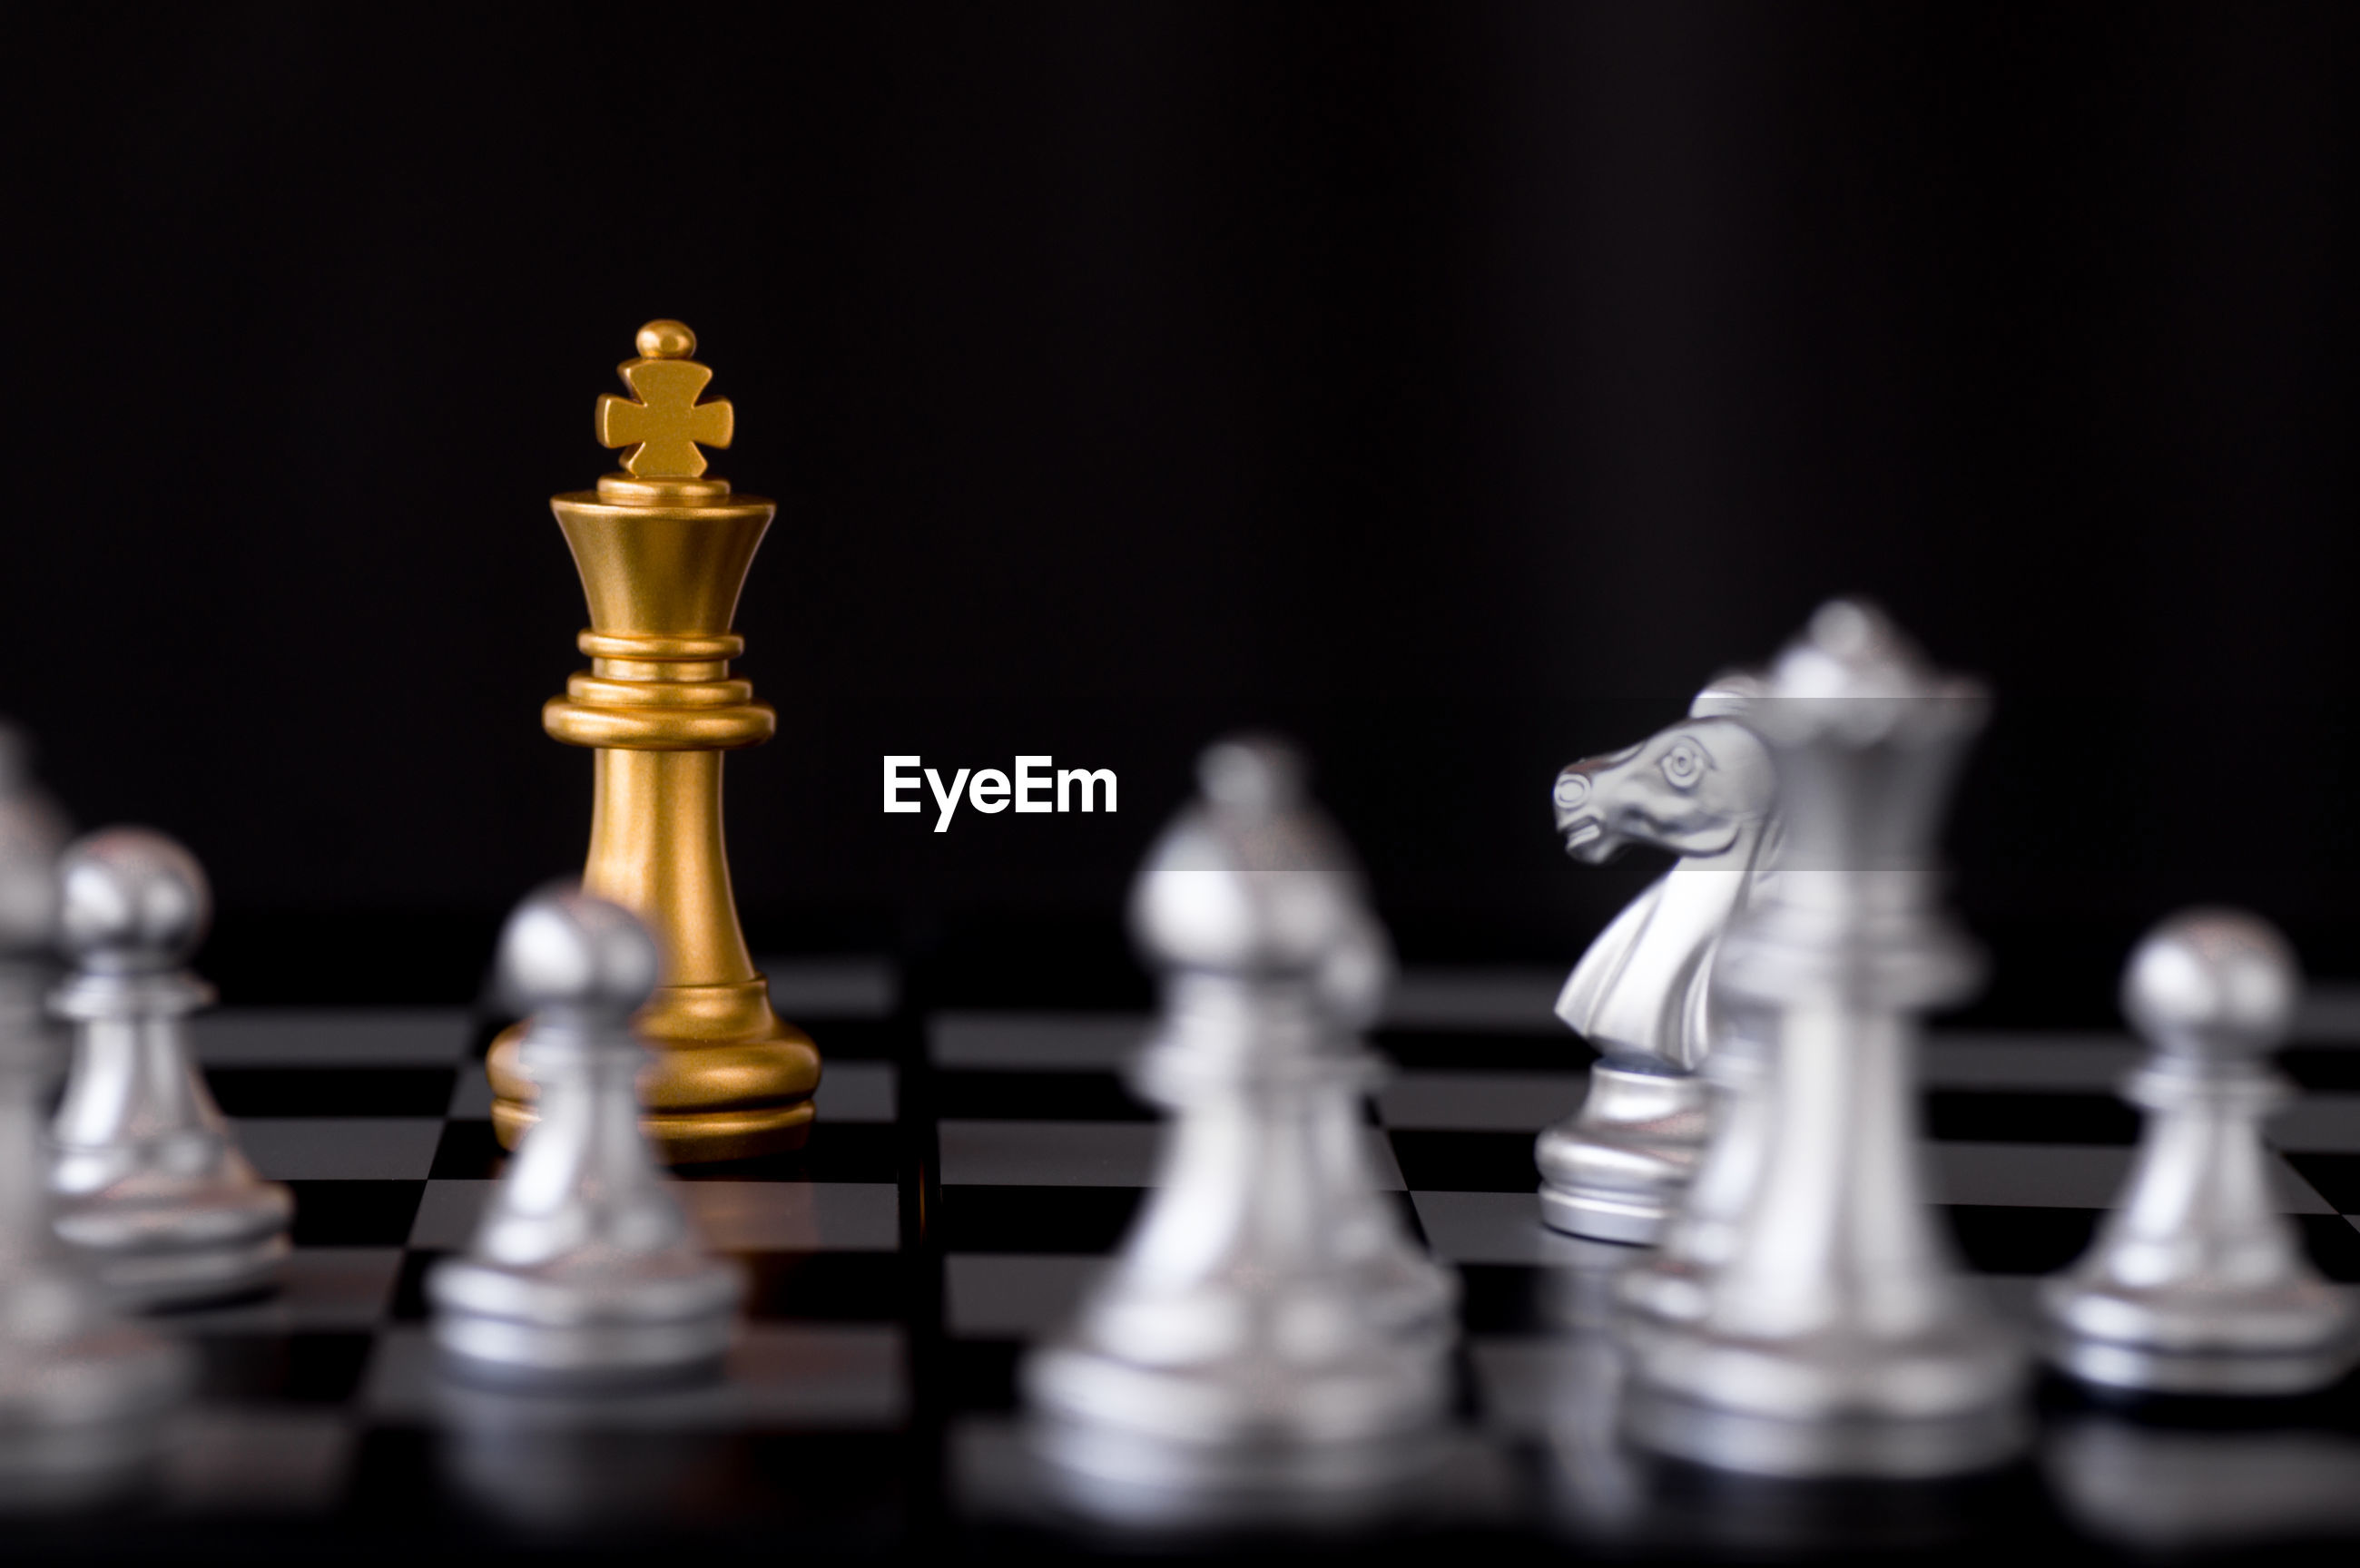 Close-up of game pieces on chess board against black background